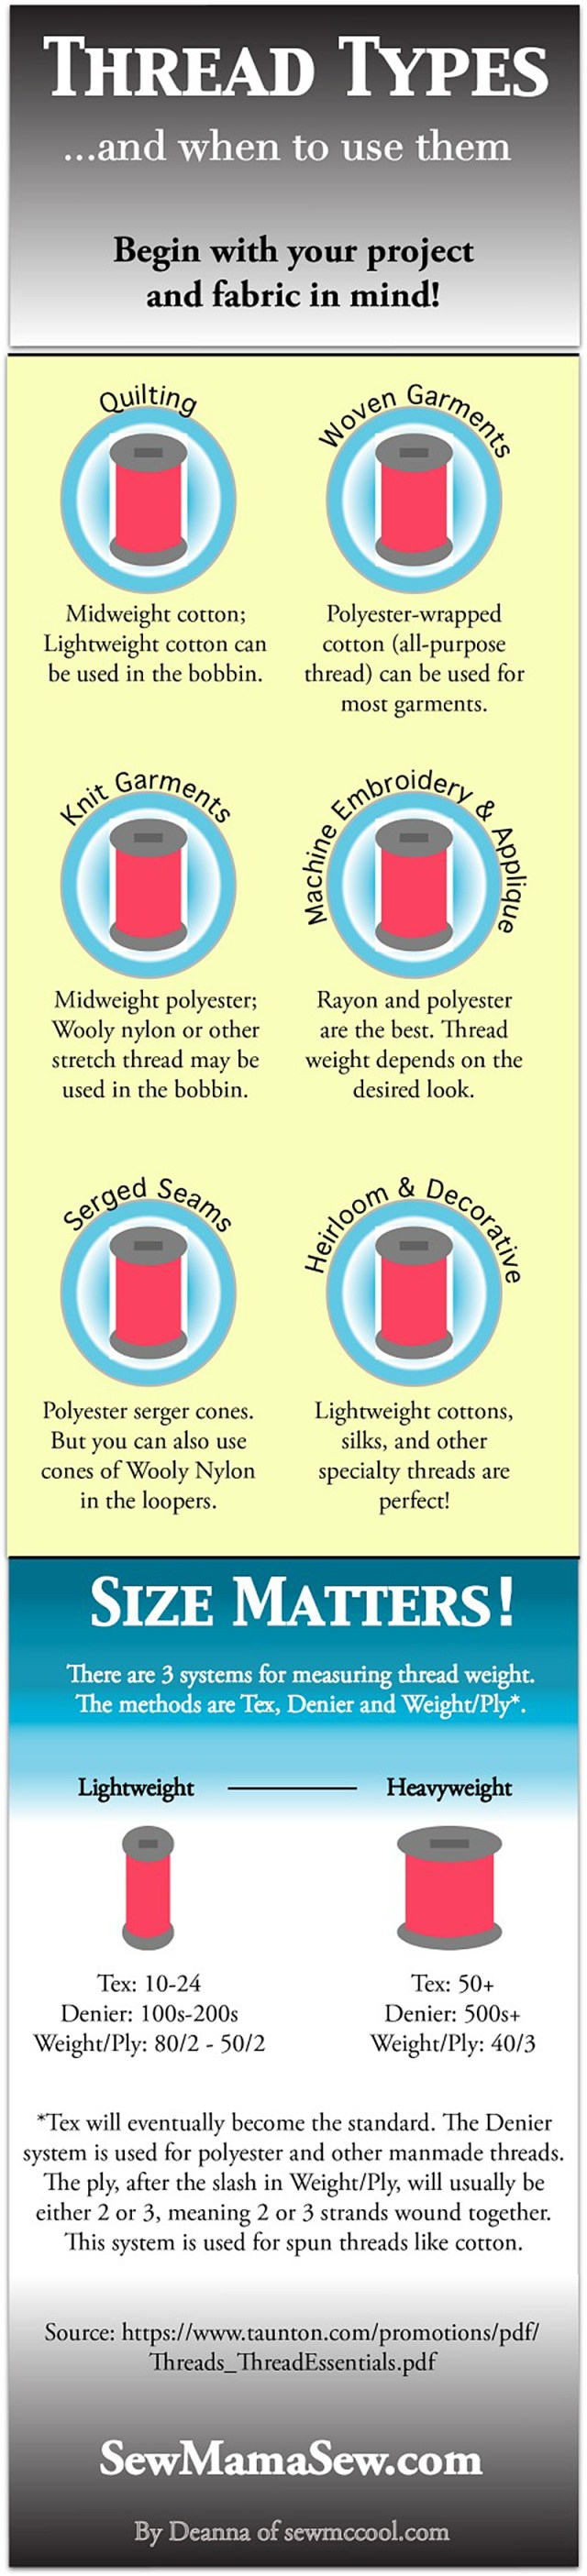 Everything you need to know about sewing thread at a glance. What threads are best for what fabrics and project types, and how is thread weight (or thickness) rated.